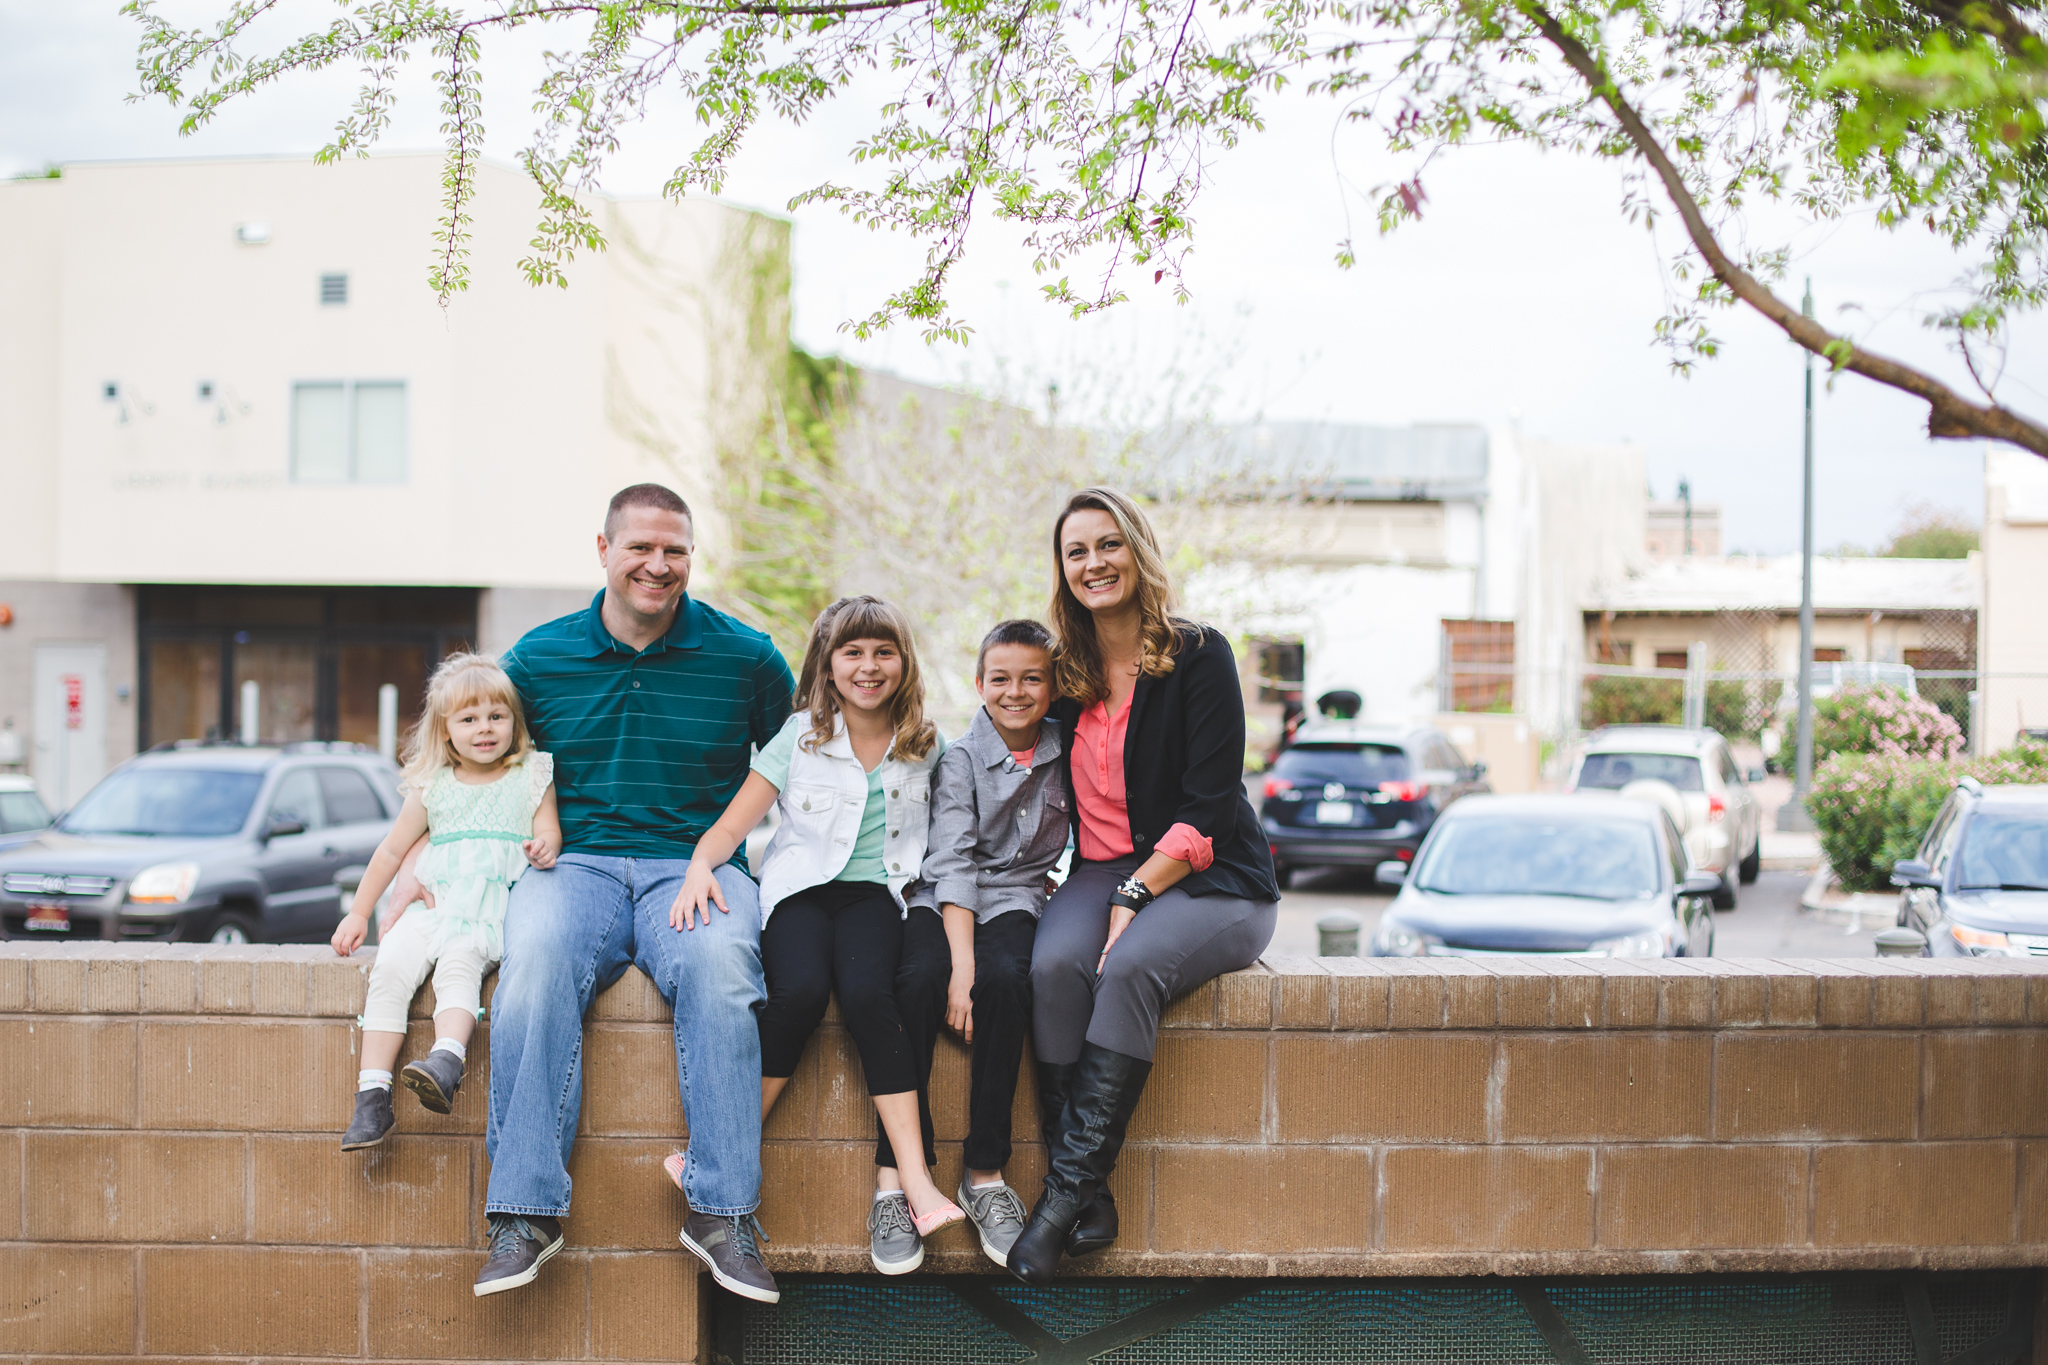 vote family sitting on wall